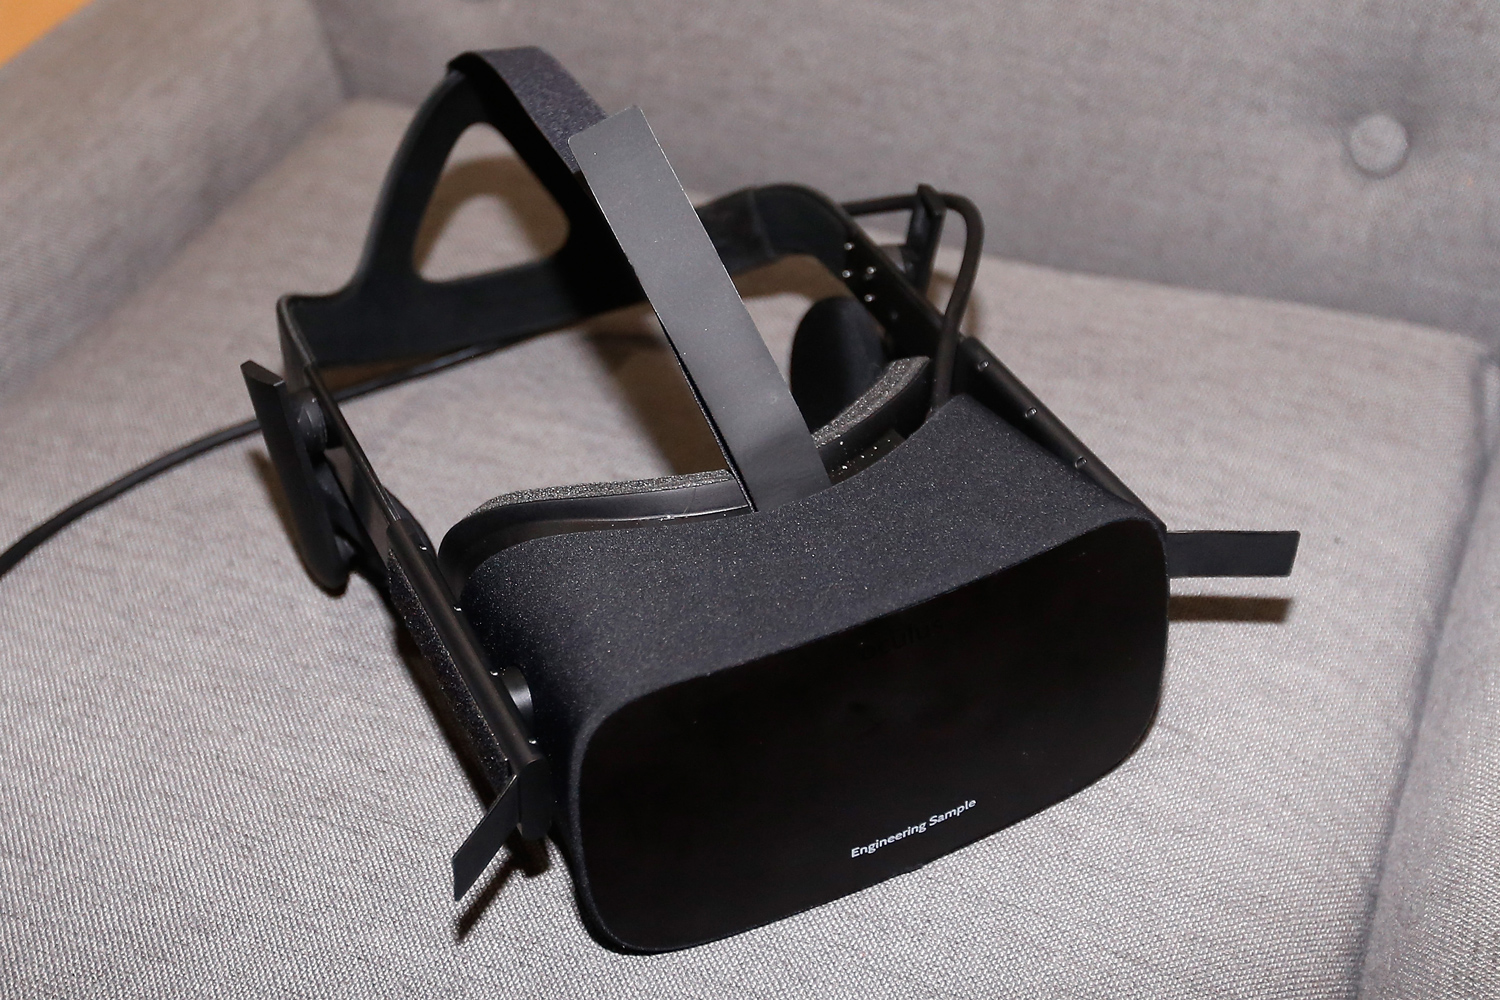 Another Price Slash Suggests the Oculus Rift Is Dead in the